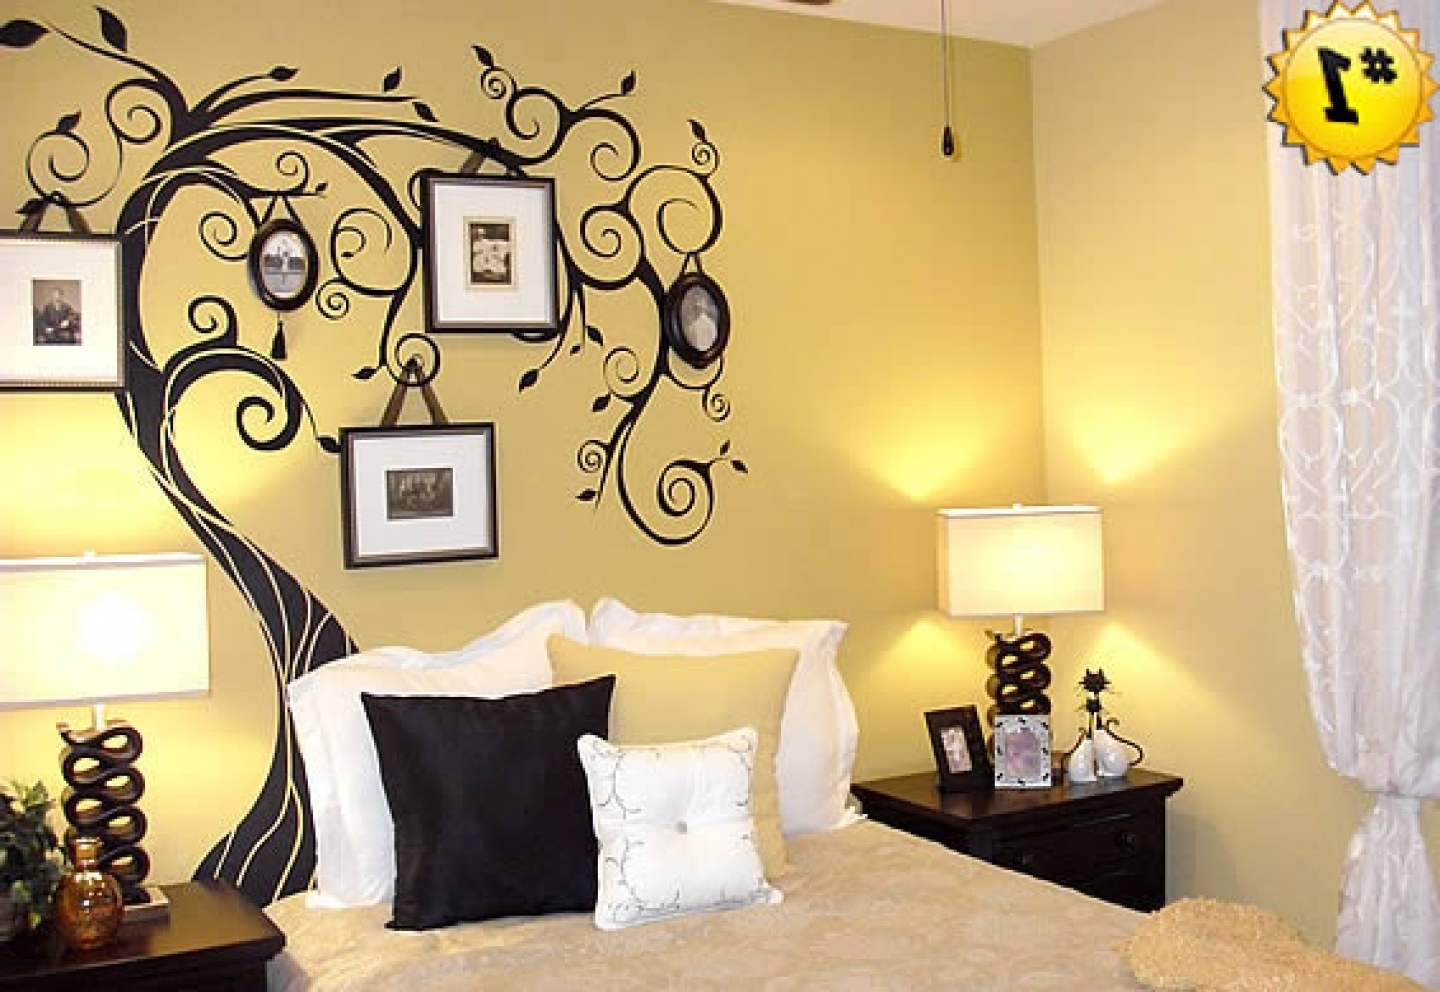 View Photos of Glamorous Wall Art (Showing 14 of 15 Photos)